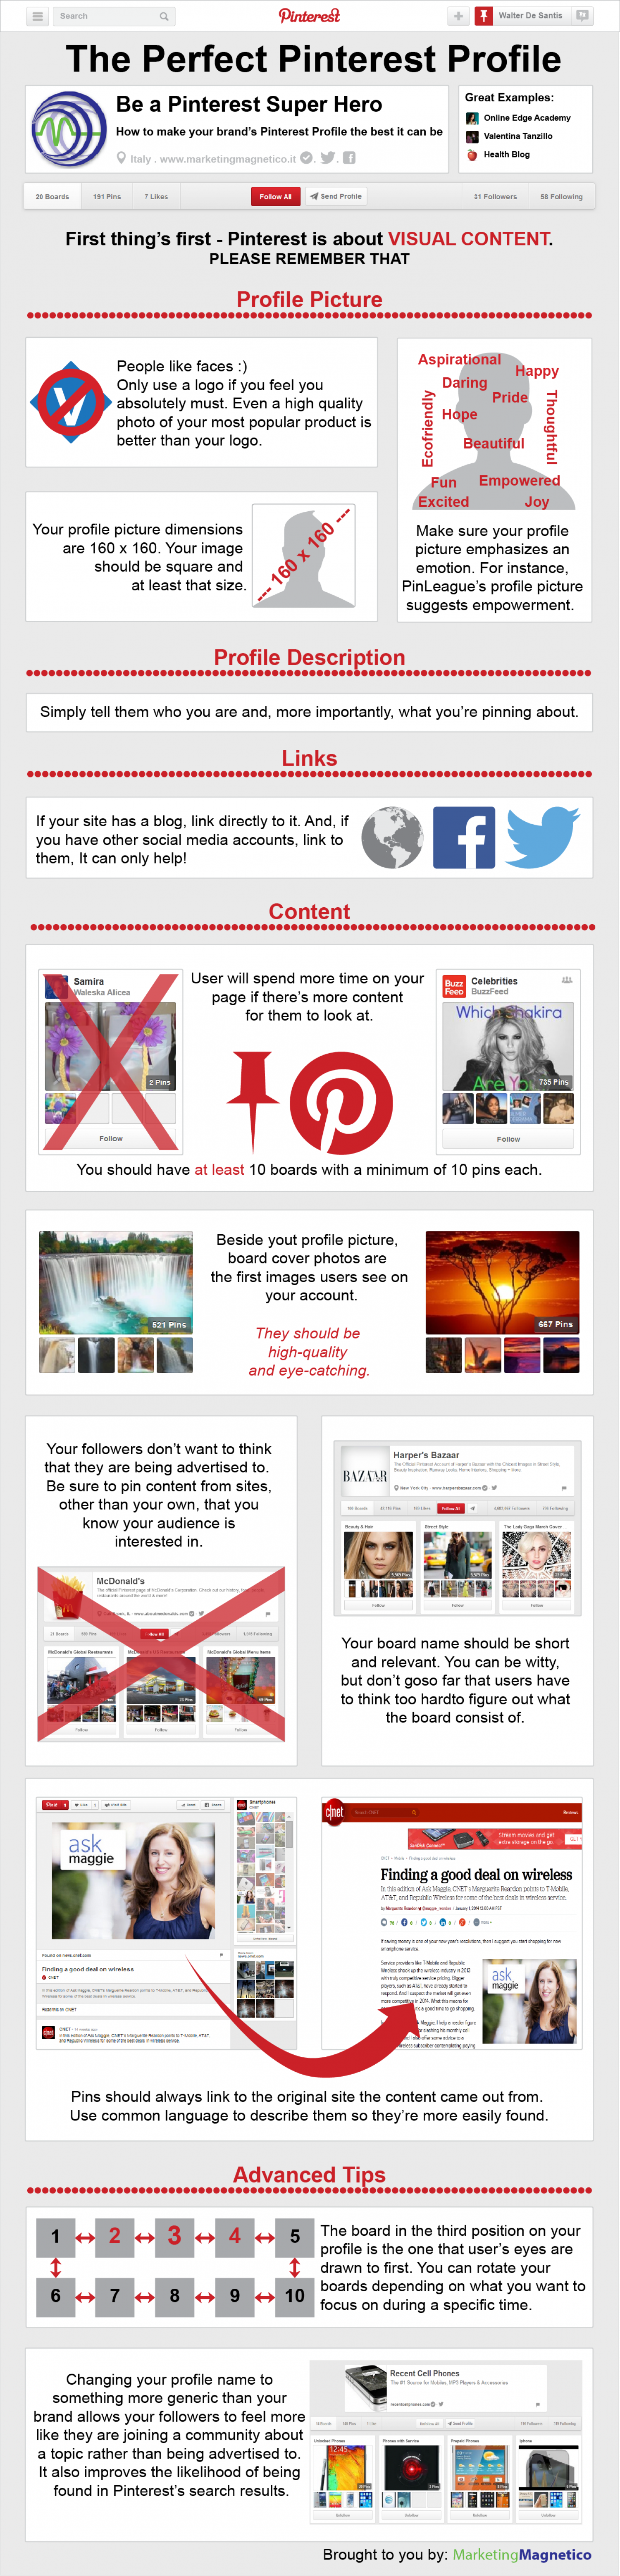 The Perfect Pinterest Profile Infographic